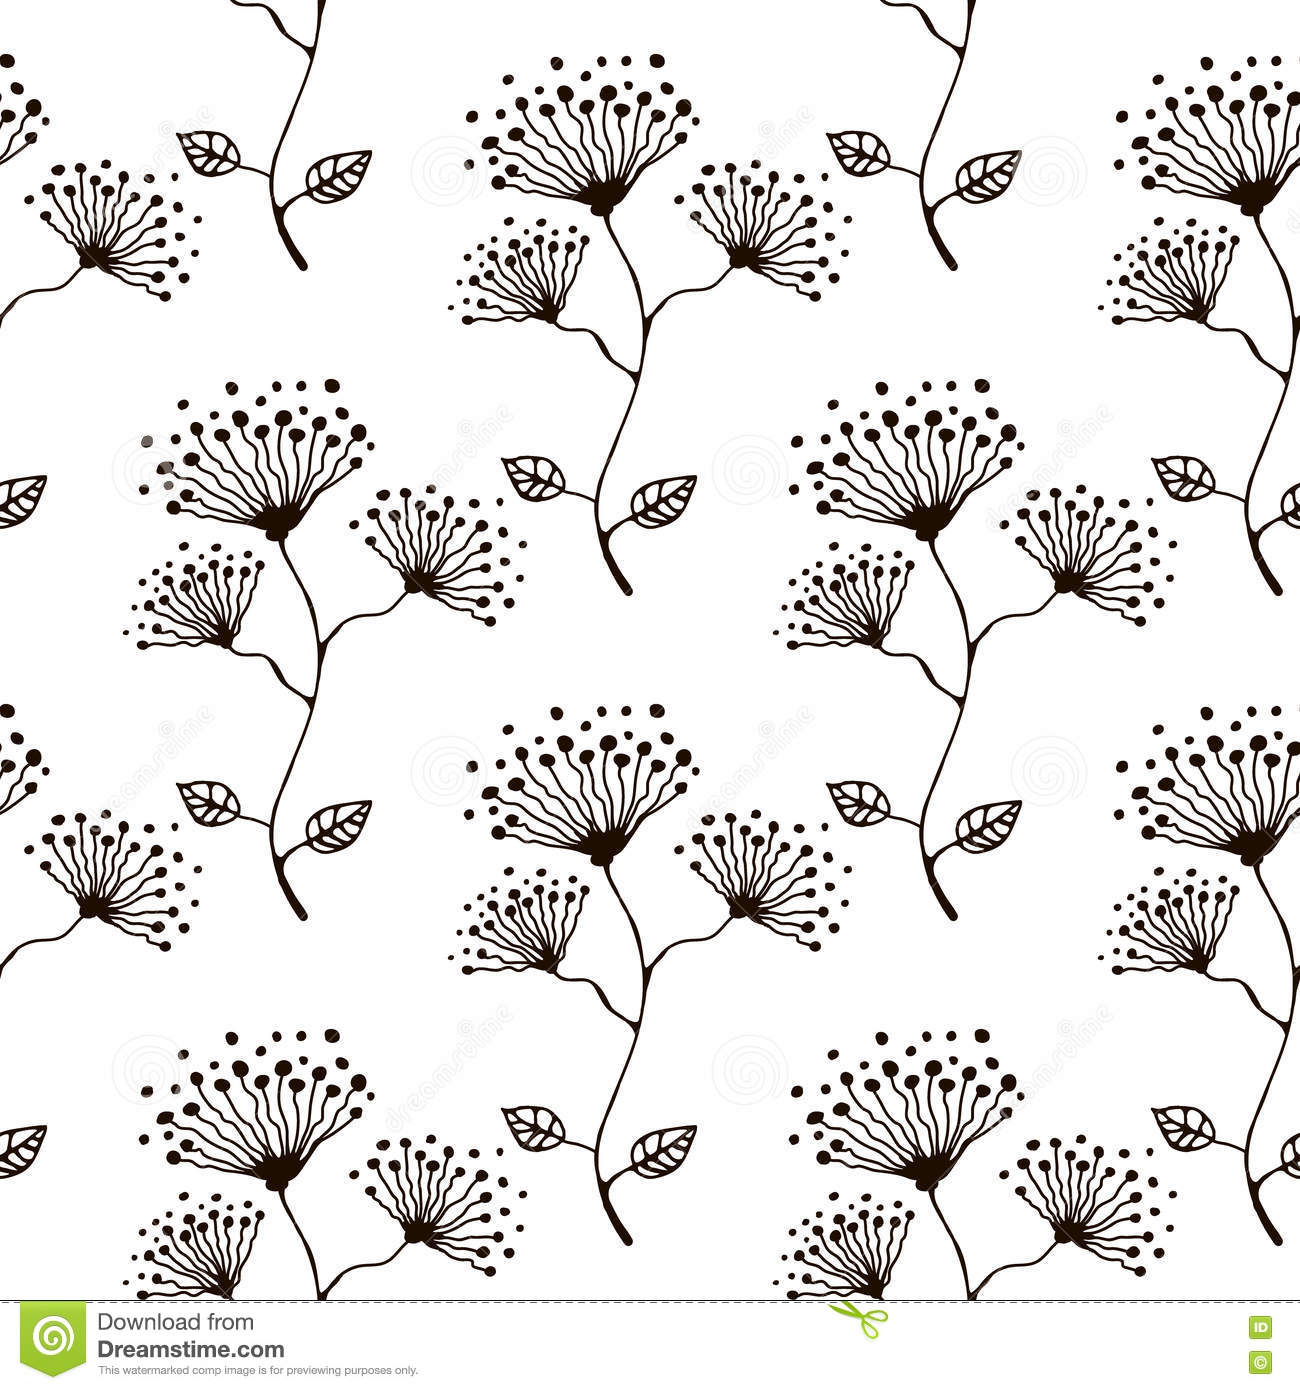 9e4ec8 Seamless Vector Floral Pattern Hand Drawn Black And White